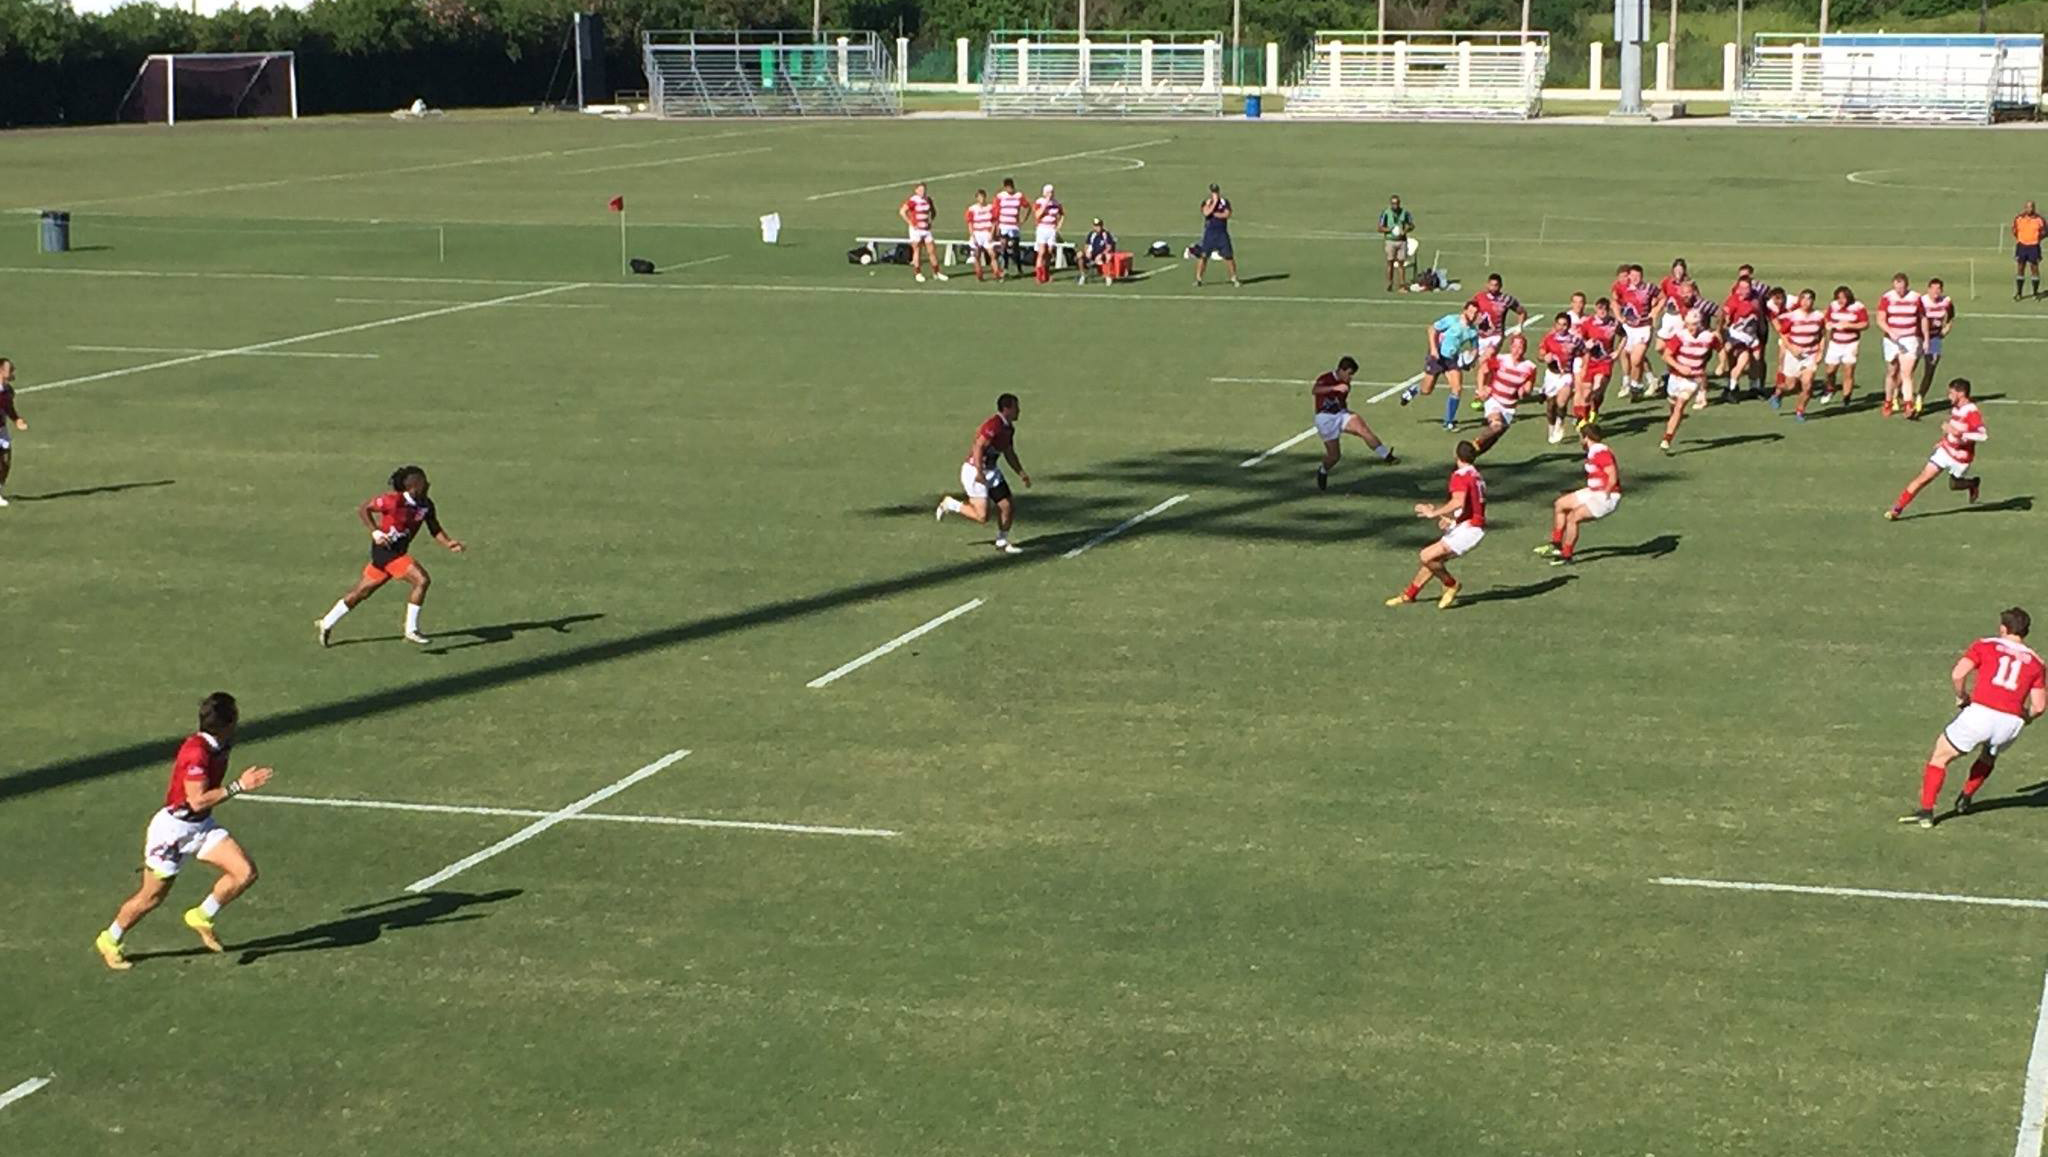 Capital Rugby Union Hosts High-Performance Rugby Weekend